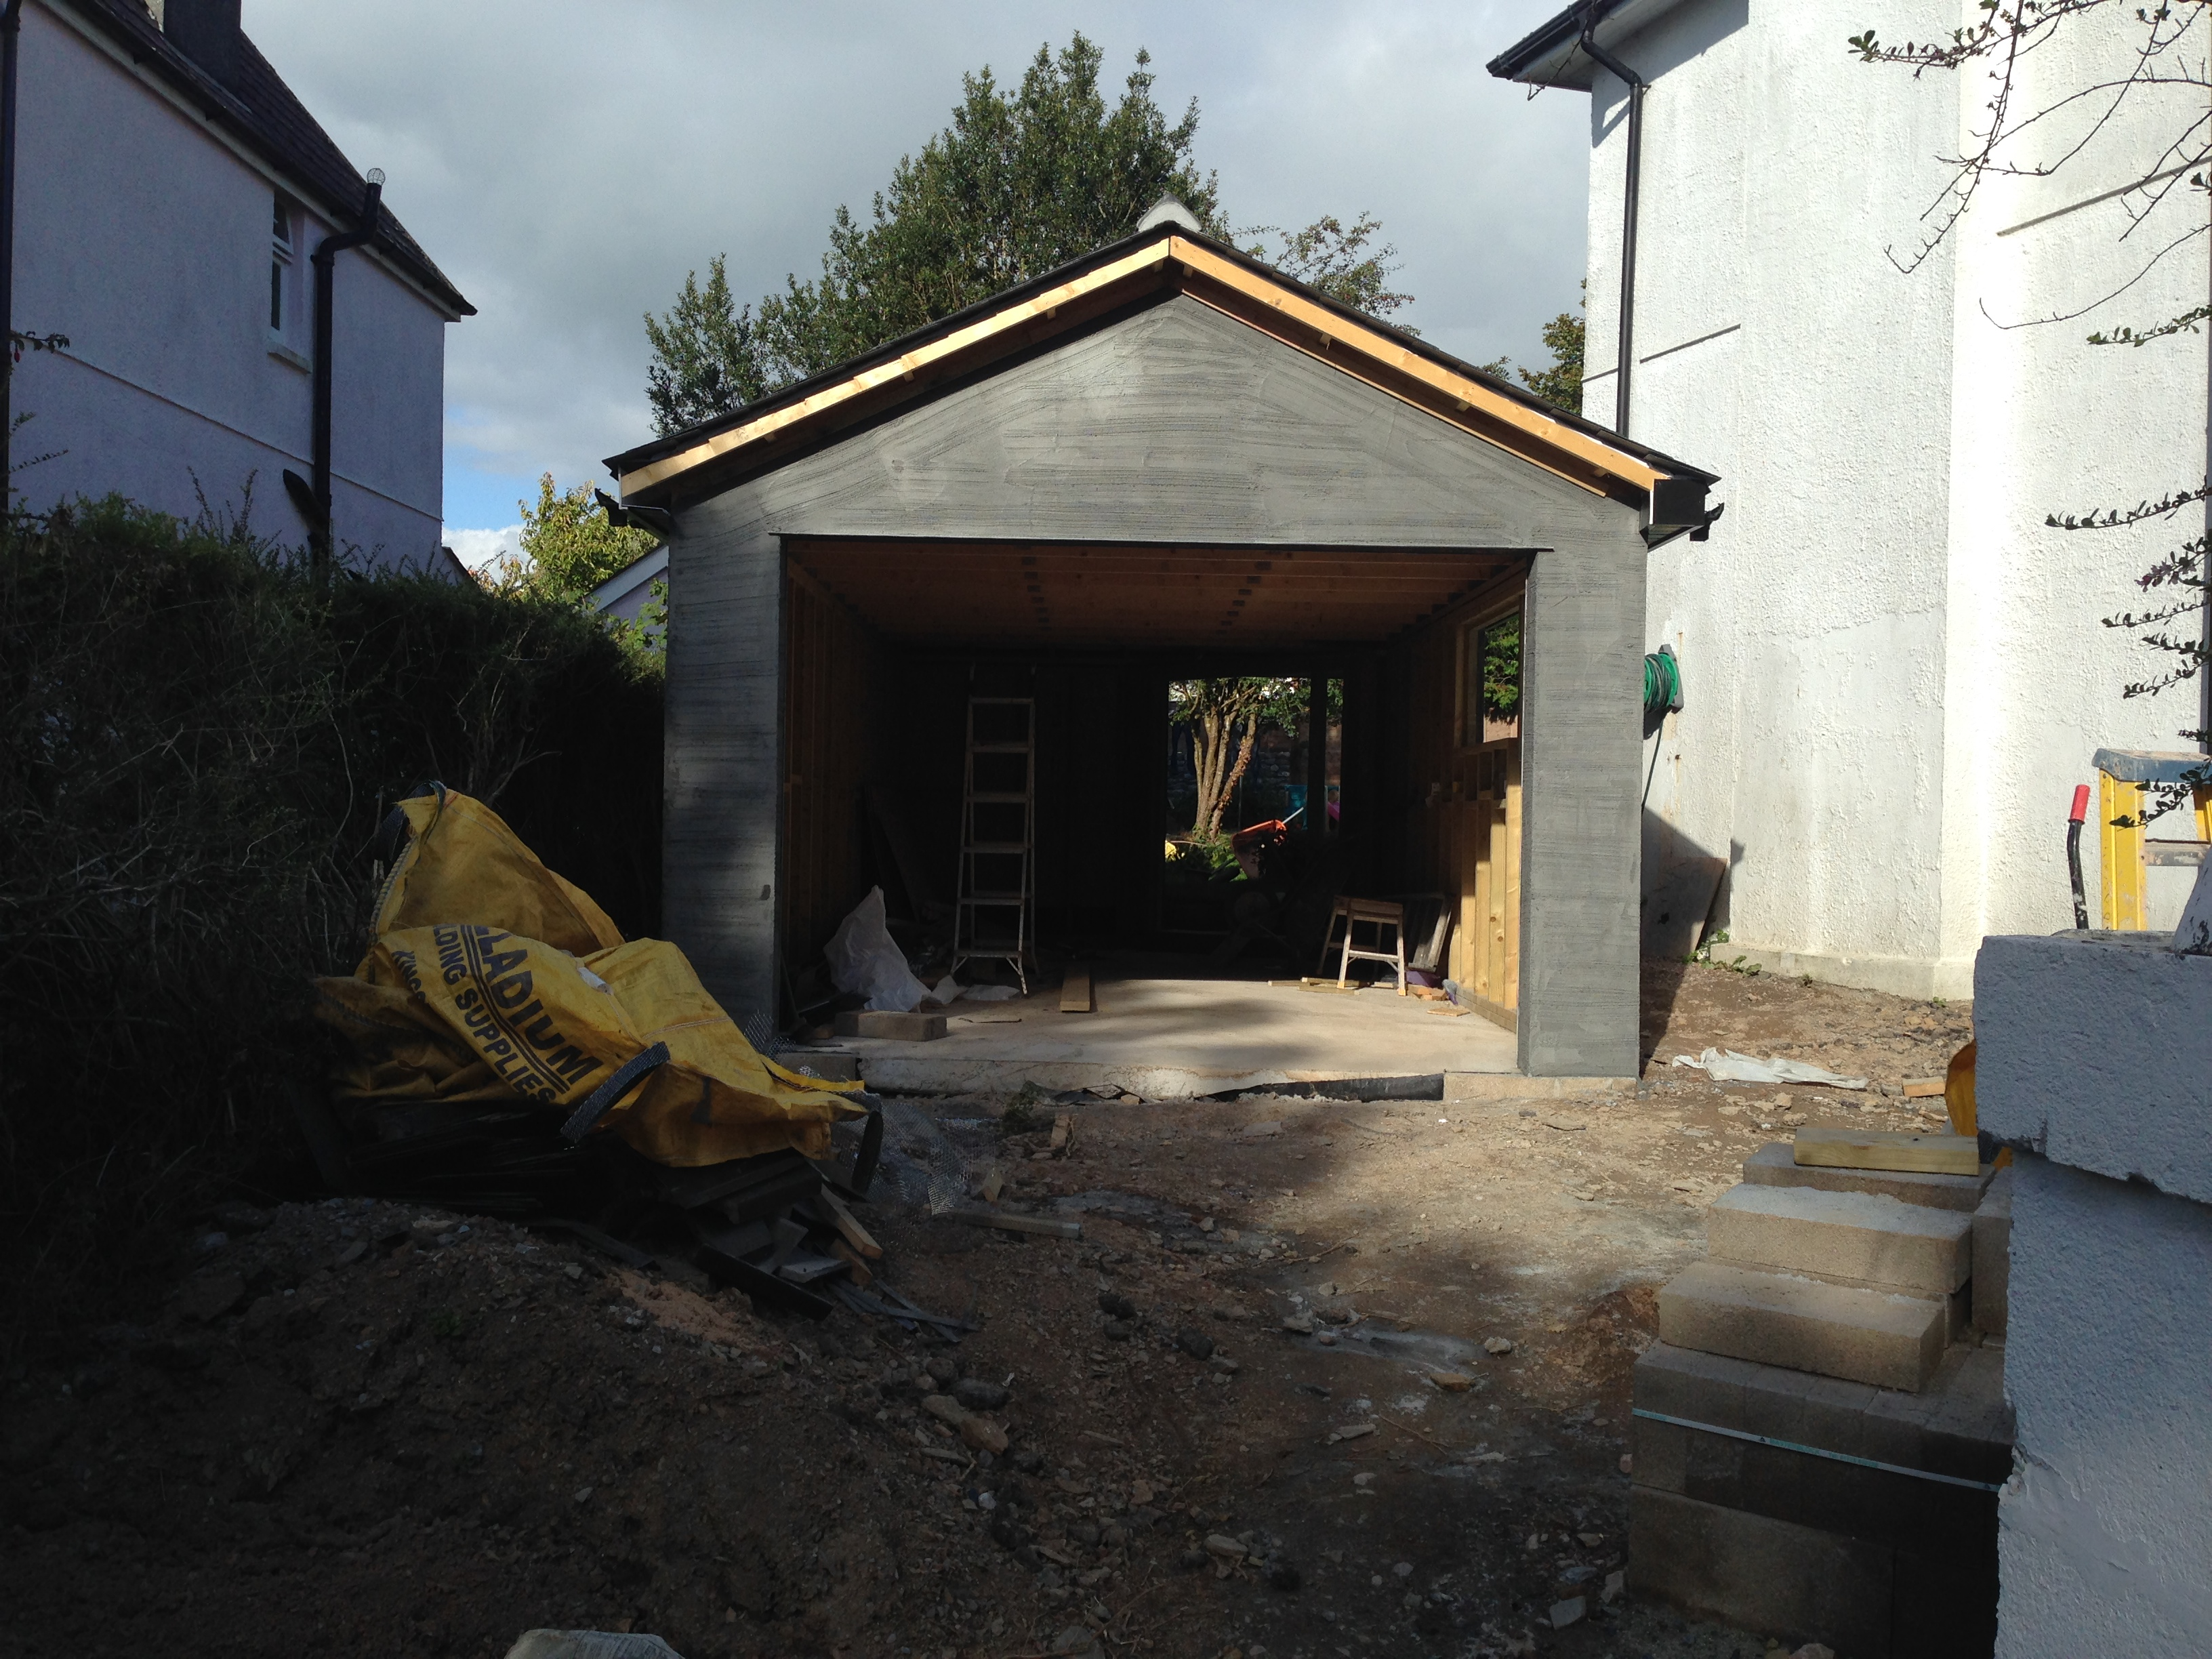 Services Romania Build Harrow London Cost Of Rewiring A House 2016 Garages